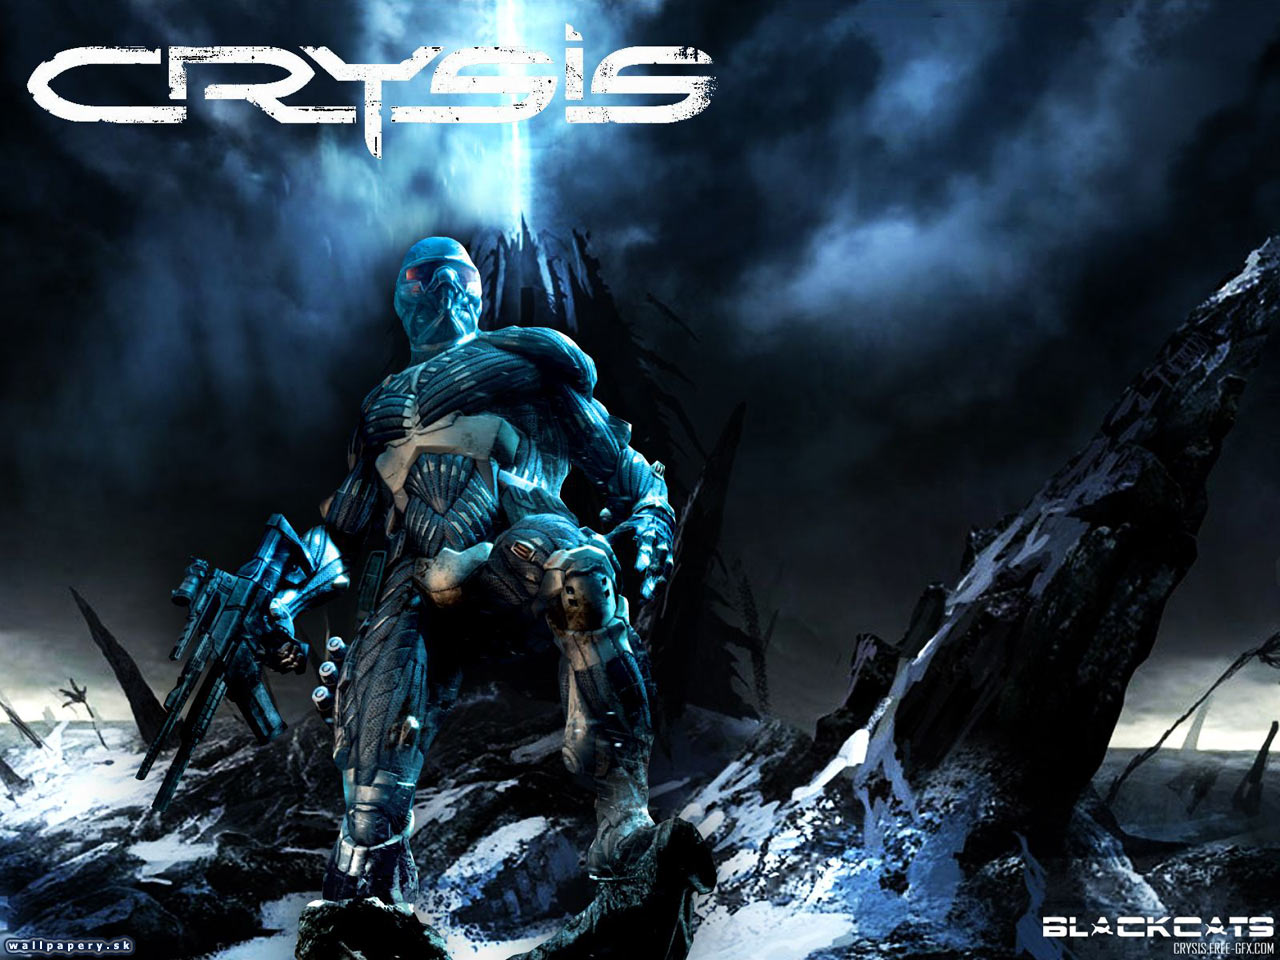 http://3.bp.blogspot.com/-wpTcBxgEbX8/UAUZpyB6BBI/AAAAAAAABN8/7lEAxJ7XGAU/s1600/crysis+wallpaper+background+crytek+frankfurt+fps+first+person+shooter.jpg